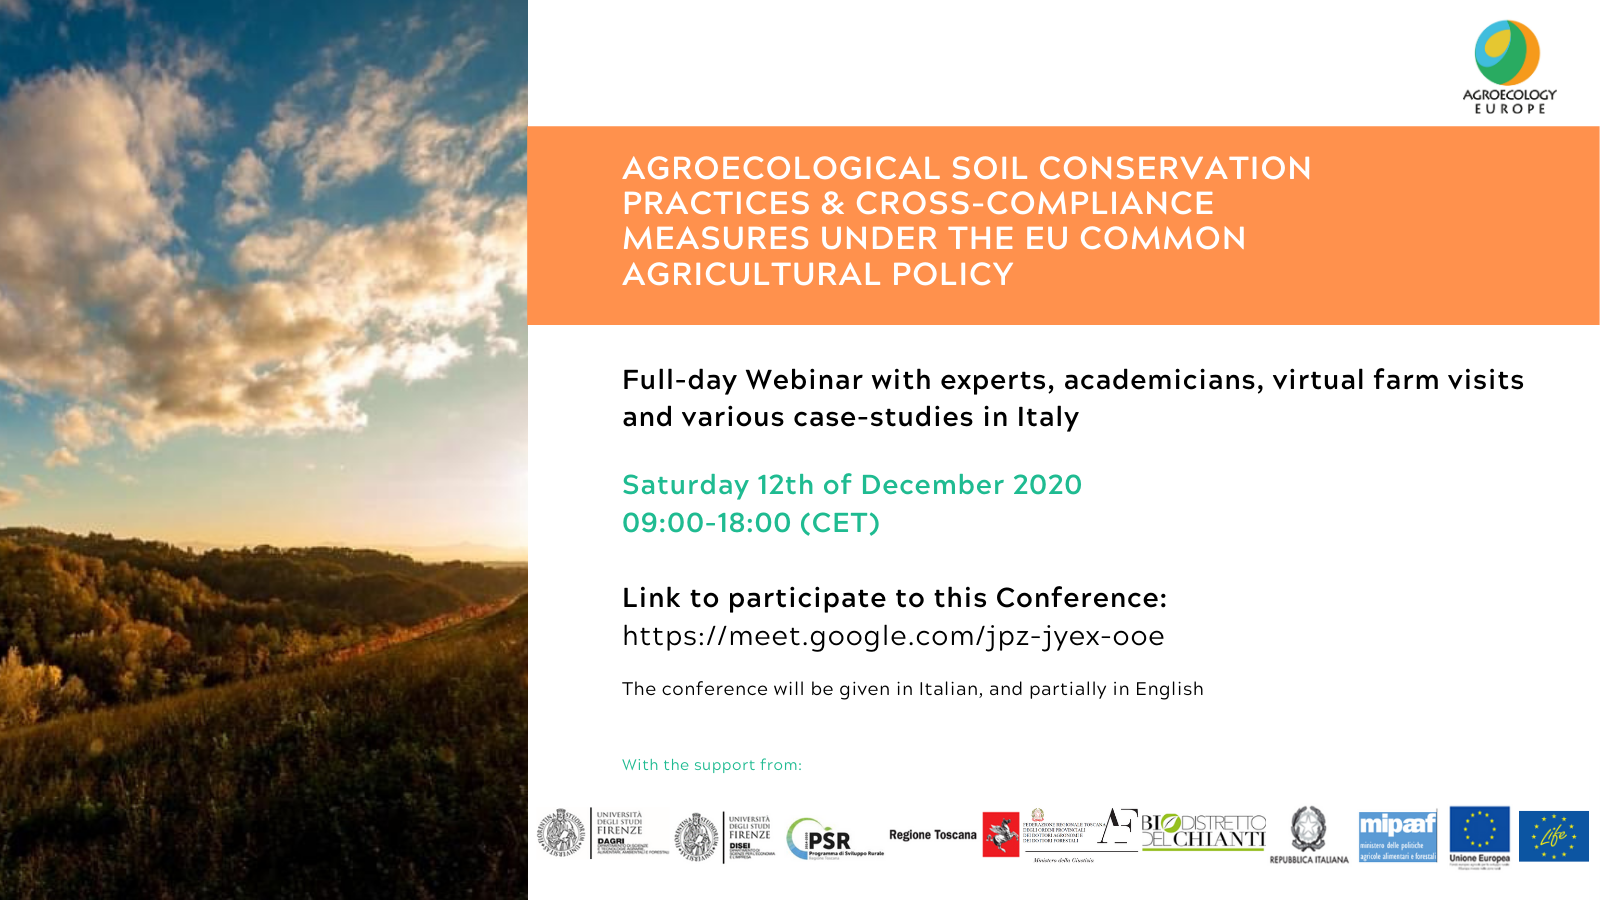 """AEEU Webinar on """"Agroecological soil conservation practices and cross-compliance measures under the EU Common Agricultural Policy"""" held on Saturday 12th of December 2020 in Italian (partially in English)"""